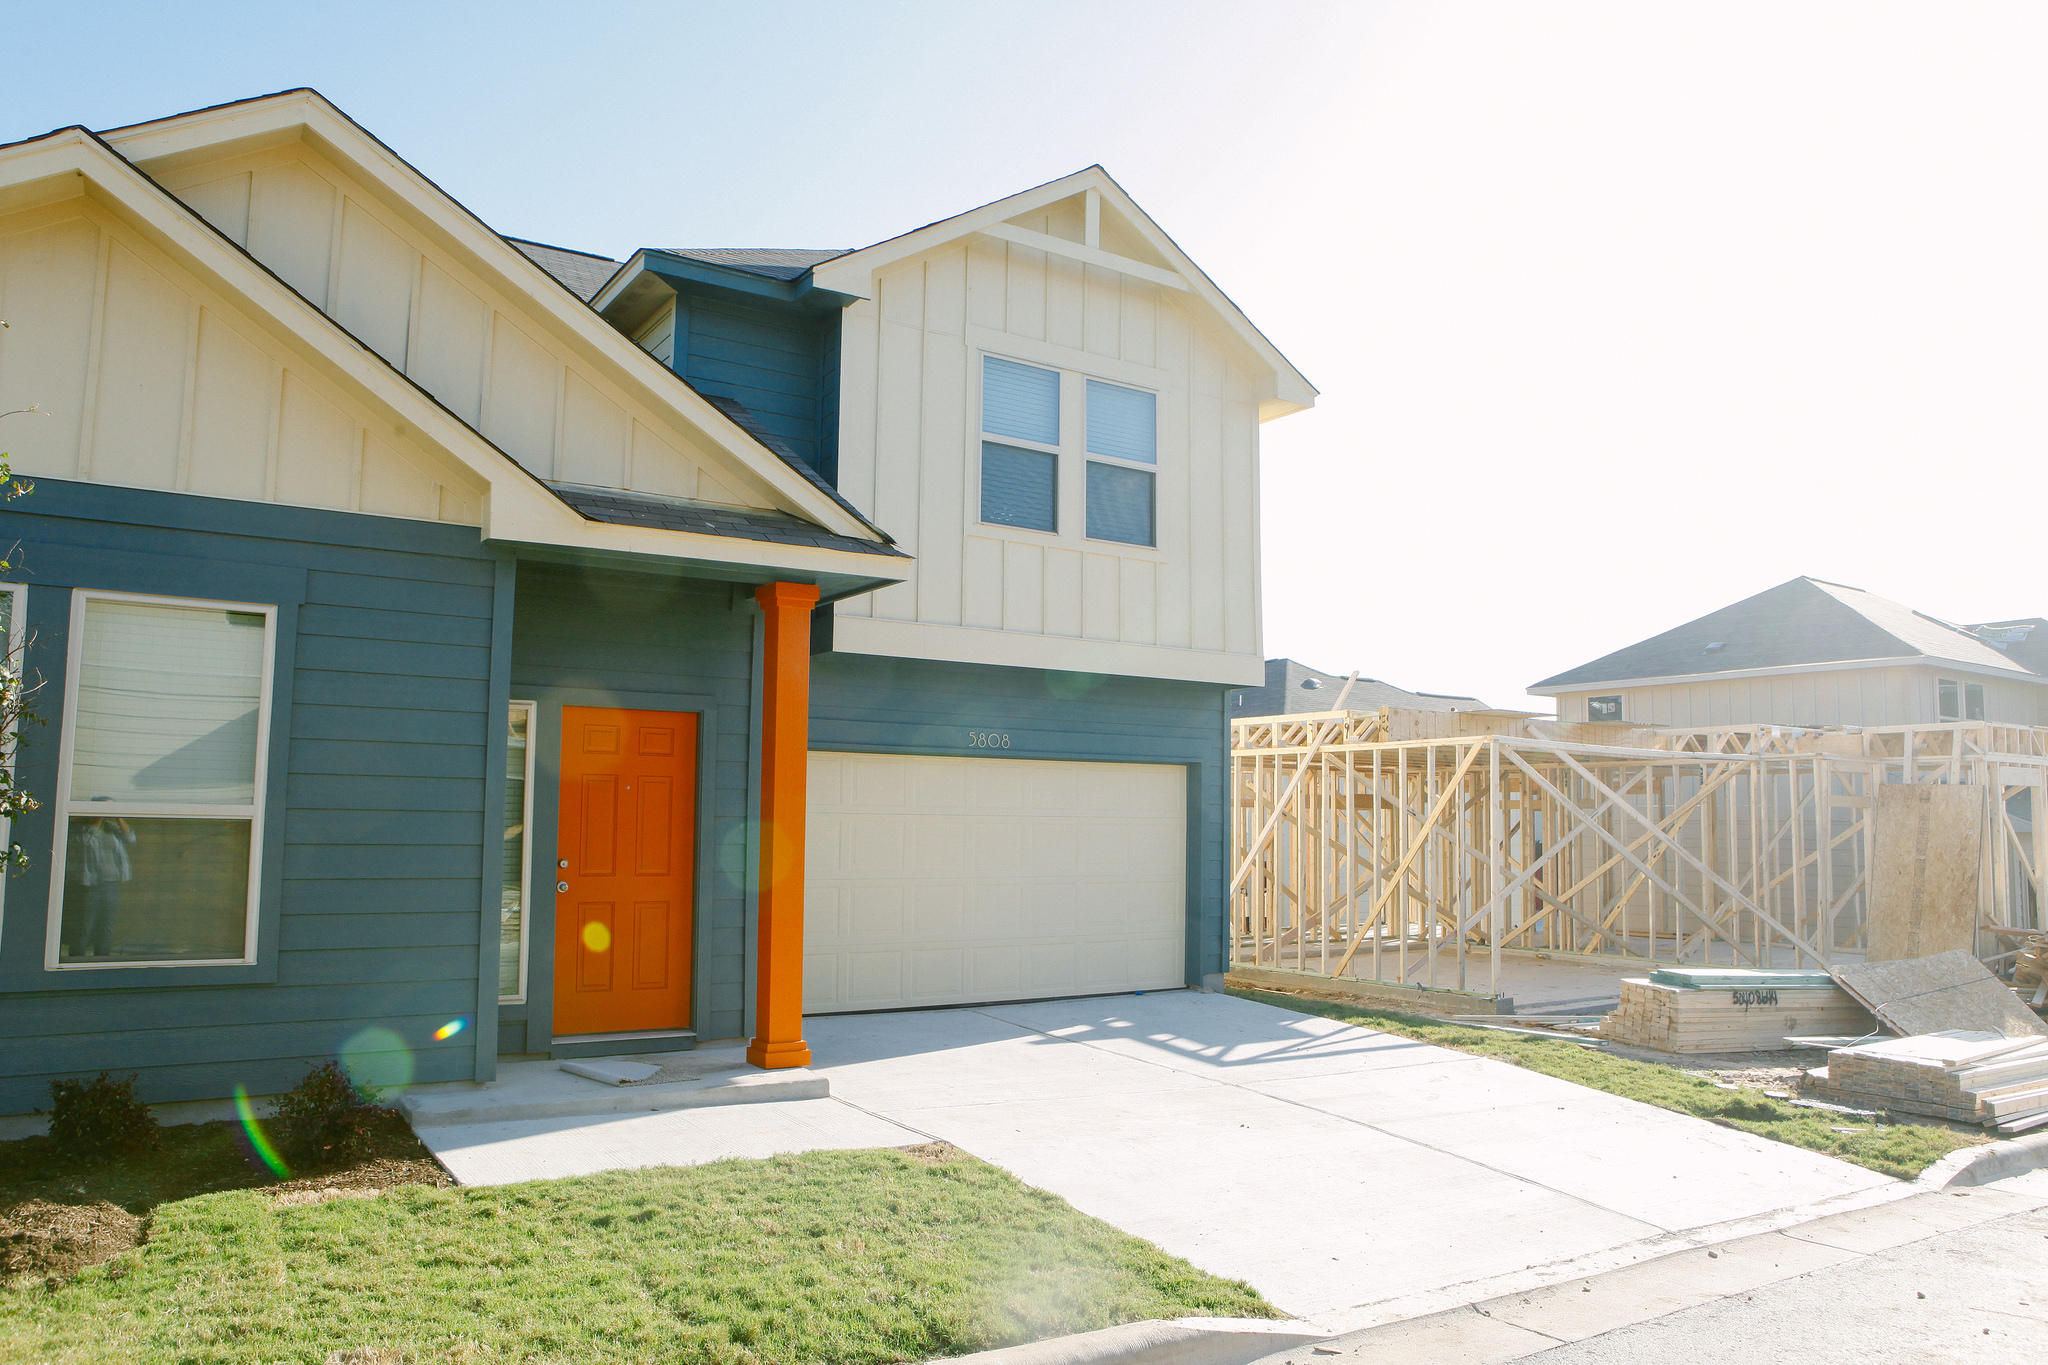 Cost to build a new house in austin - Ilana Panich Linsman For Kut